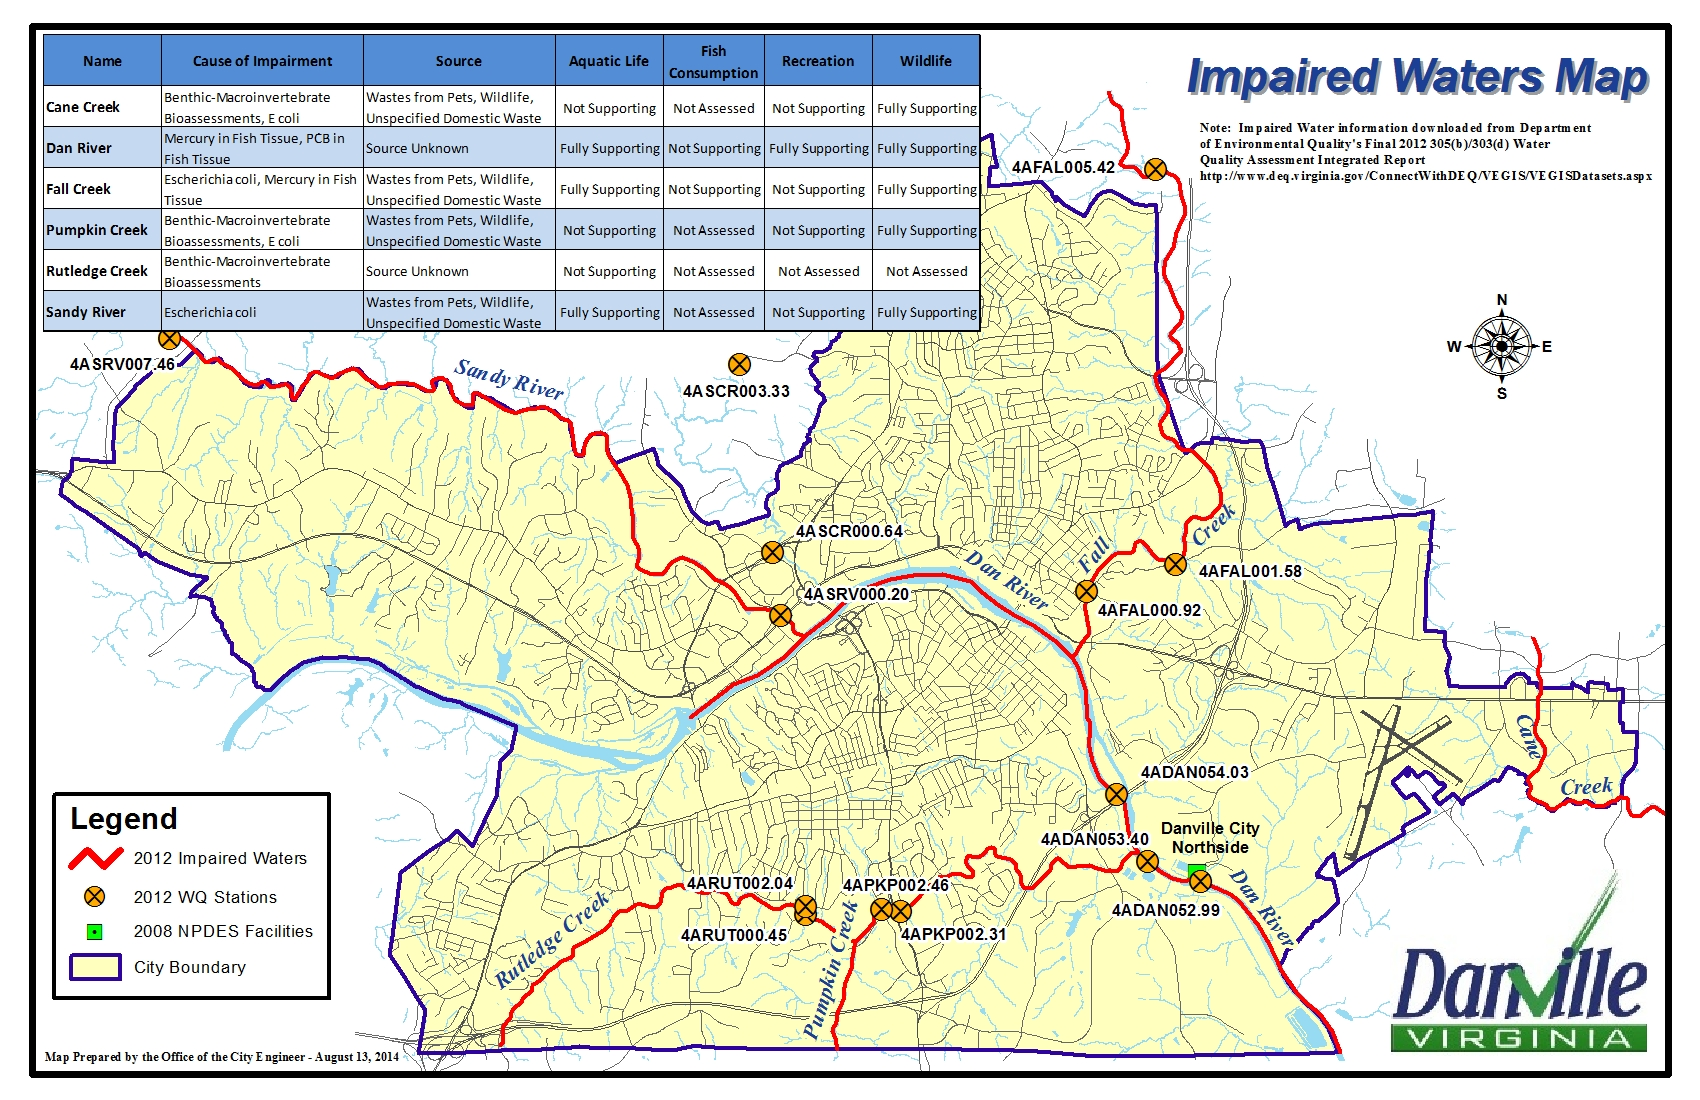 map of impaired water in the Danville area